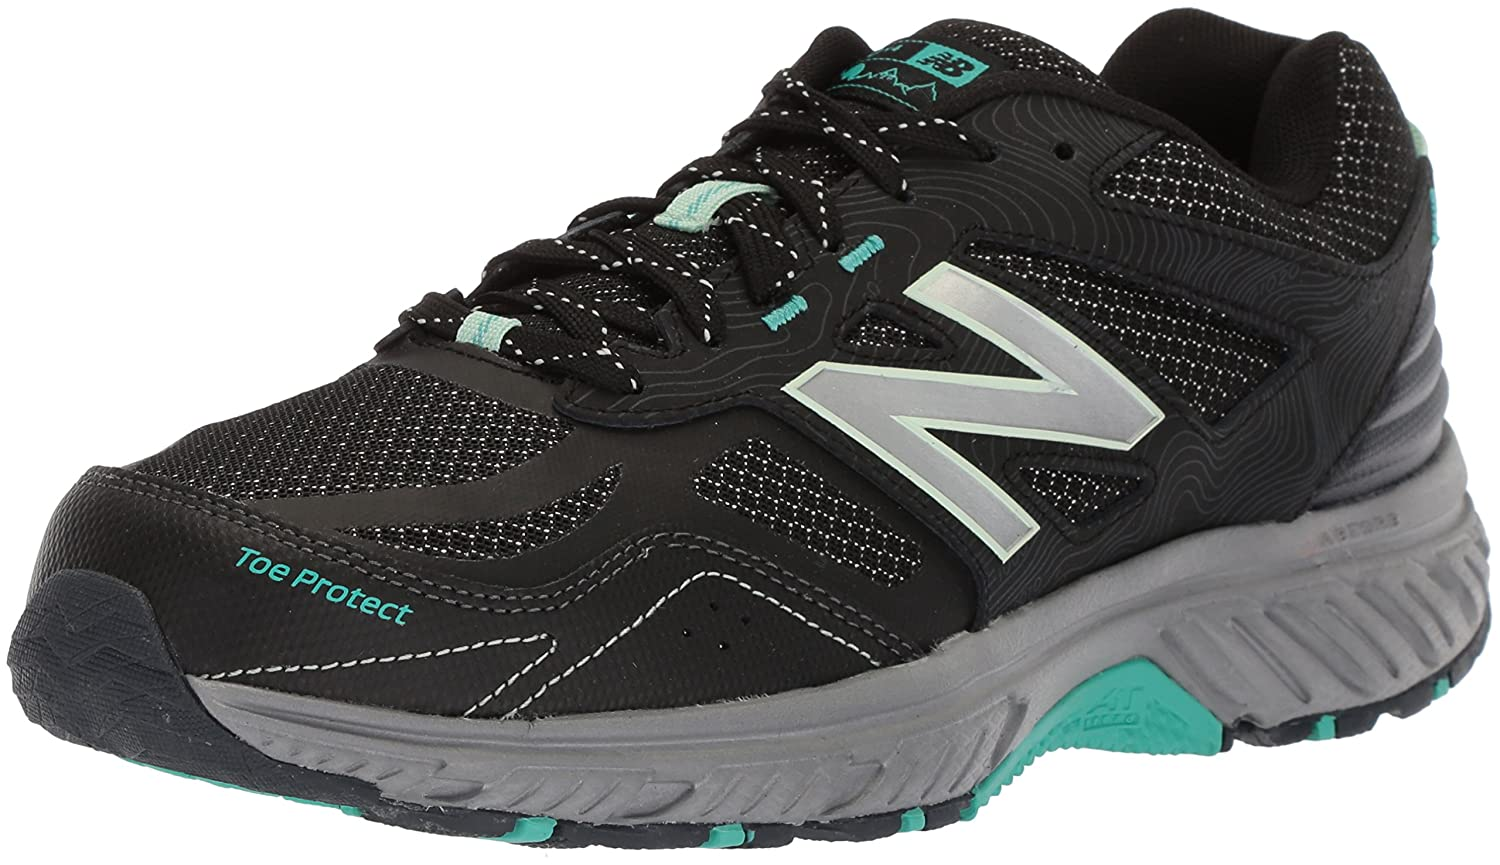 8e29d652f18ef Amazon.com | New Balance Women's 510v4 Cushioning Trail Running Shoe |  Trail Running